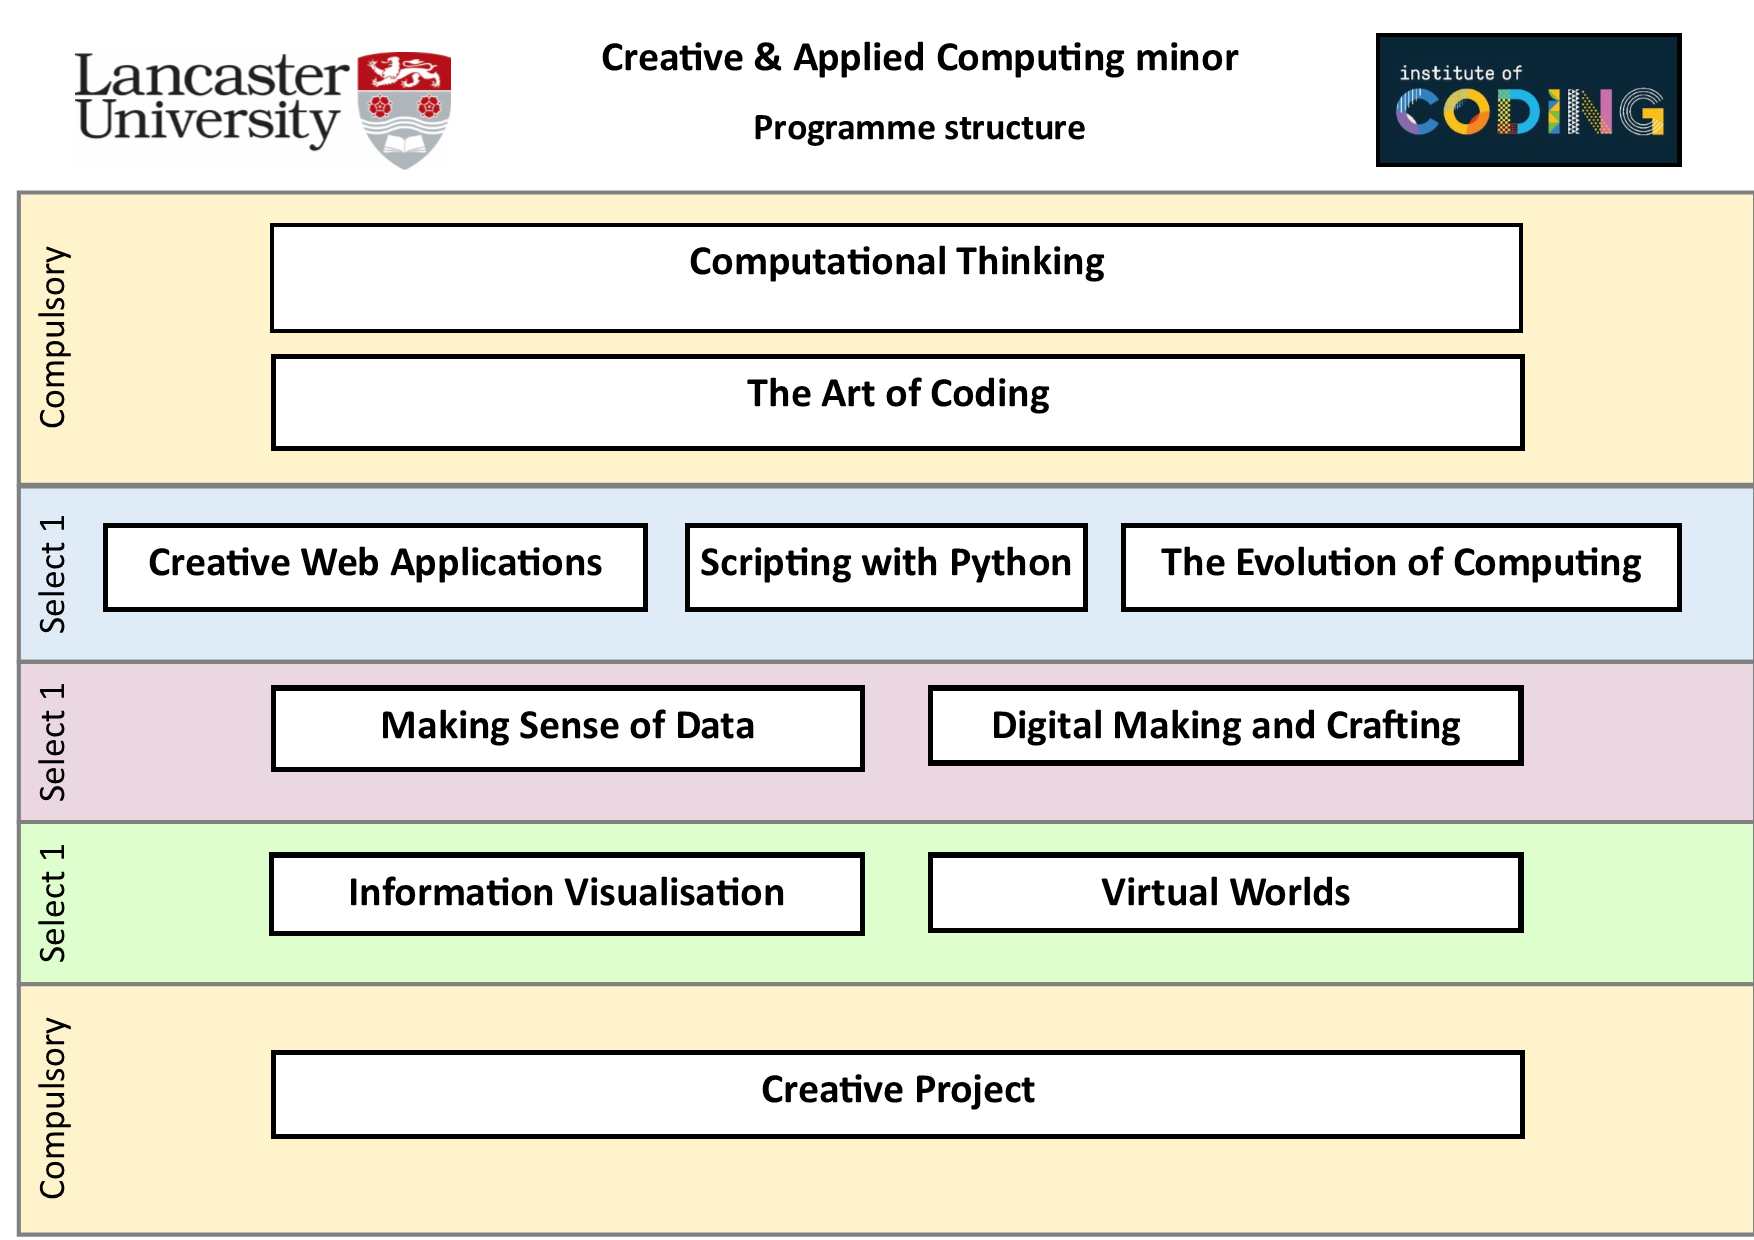 creative and applied computing minor programme structure